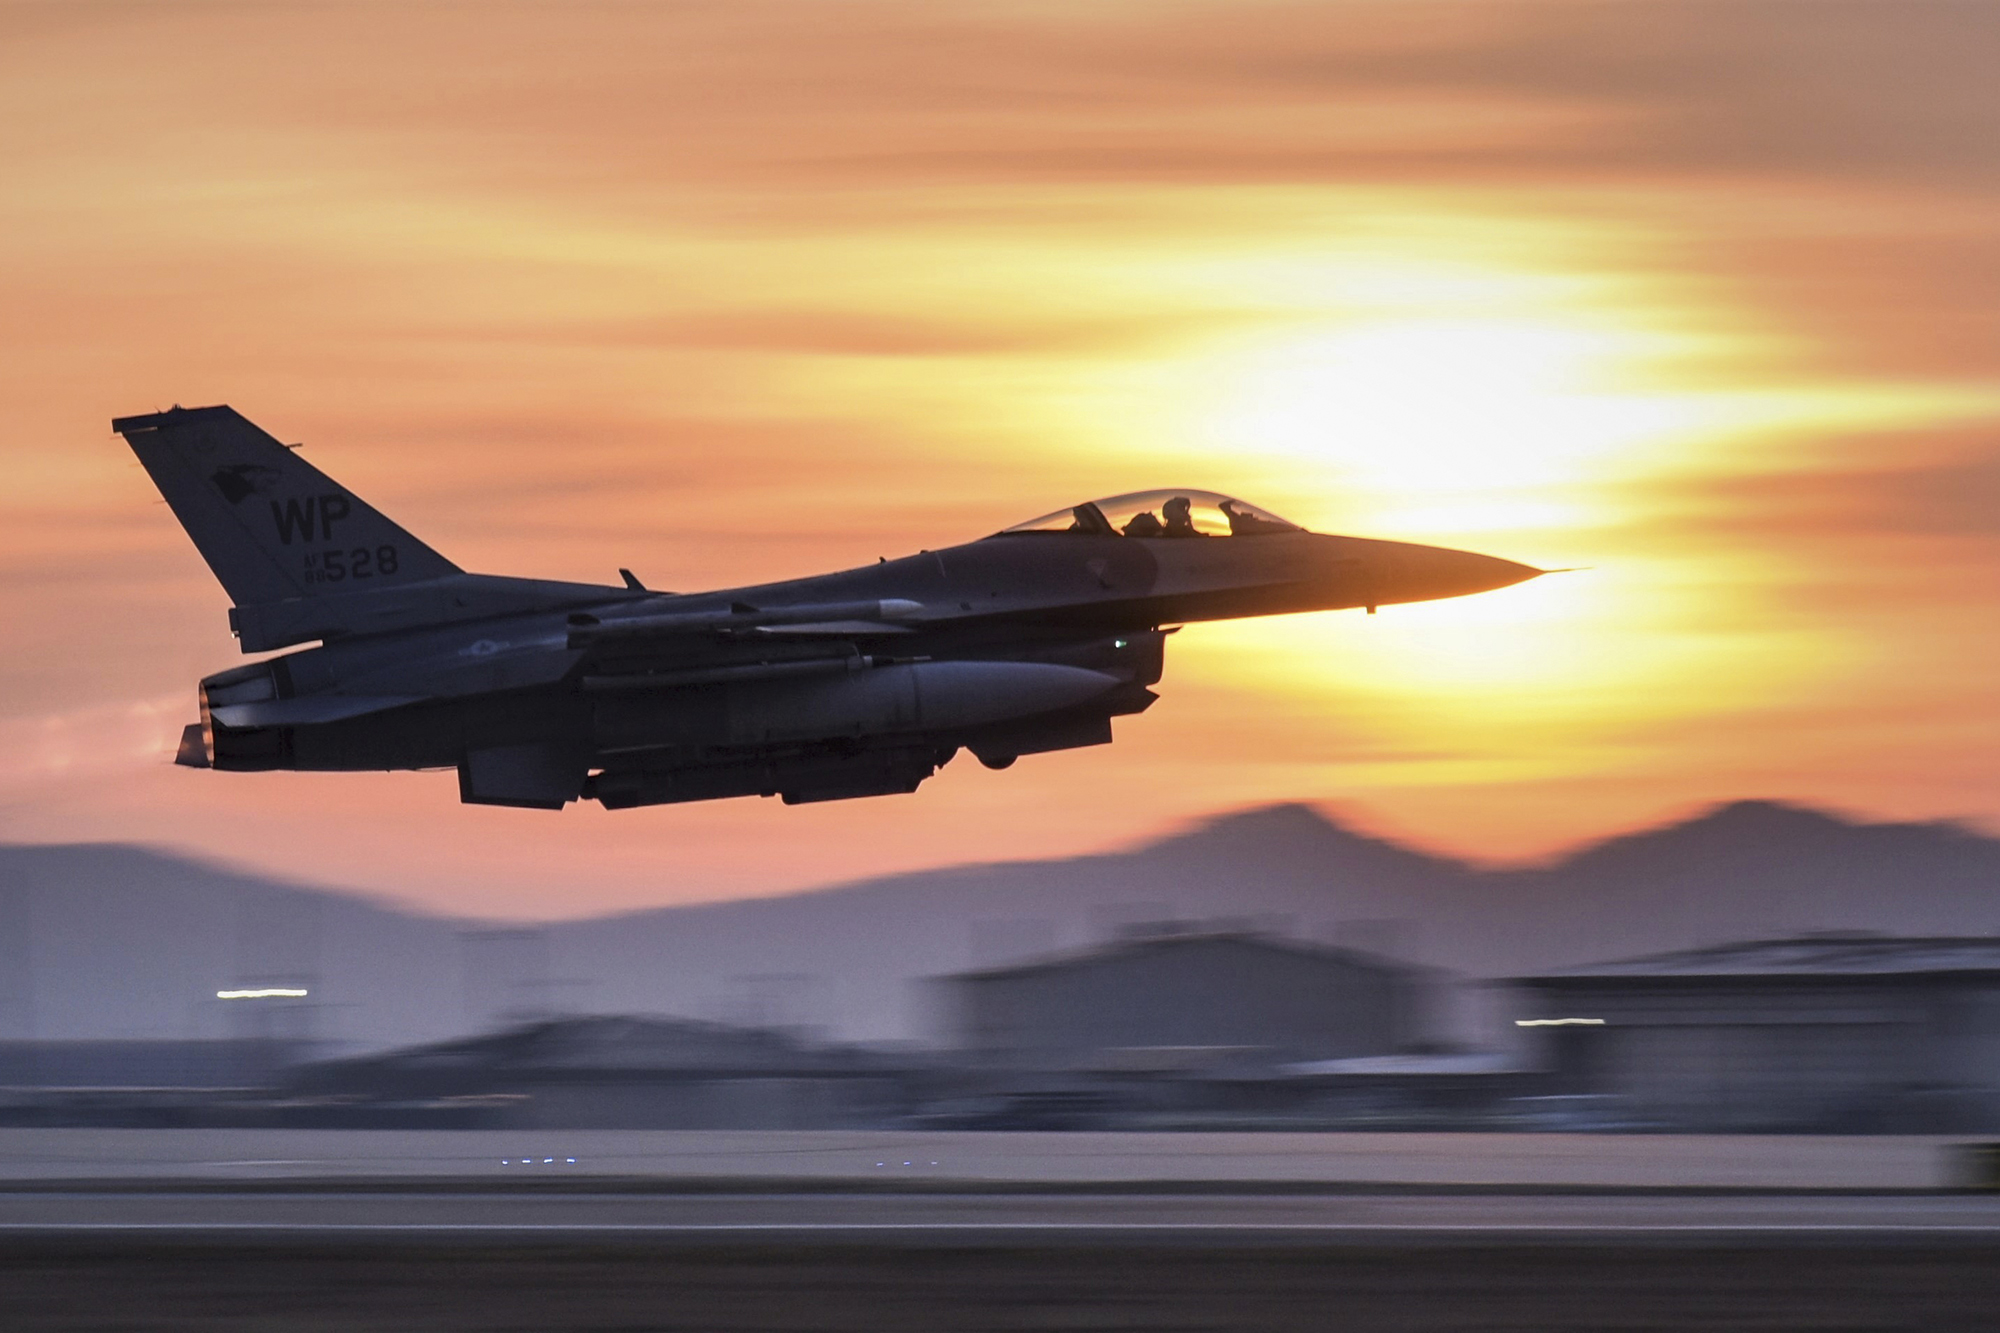 An 8th Fighter Wing F-16 Fighting Falcon takes off during a routine training event at Kunsan Air Base, Republic of Korea, March 24, 2021. (Tech. Sgt. Kristin S. High/Air Force)